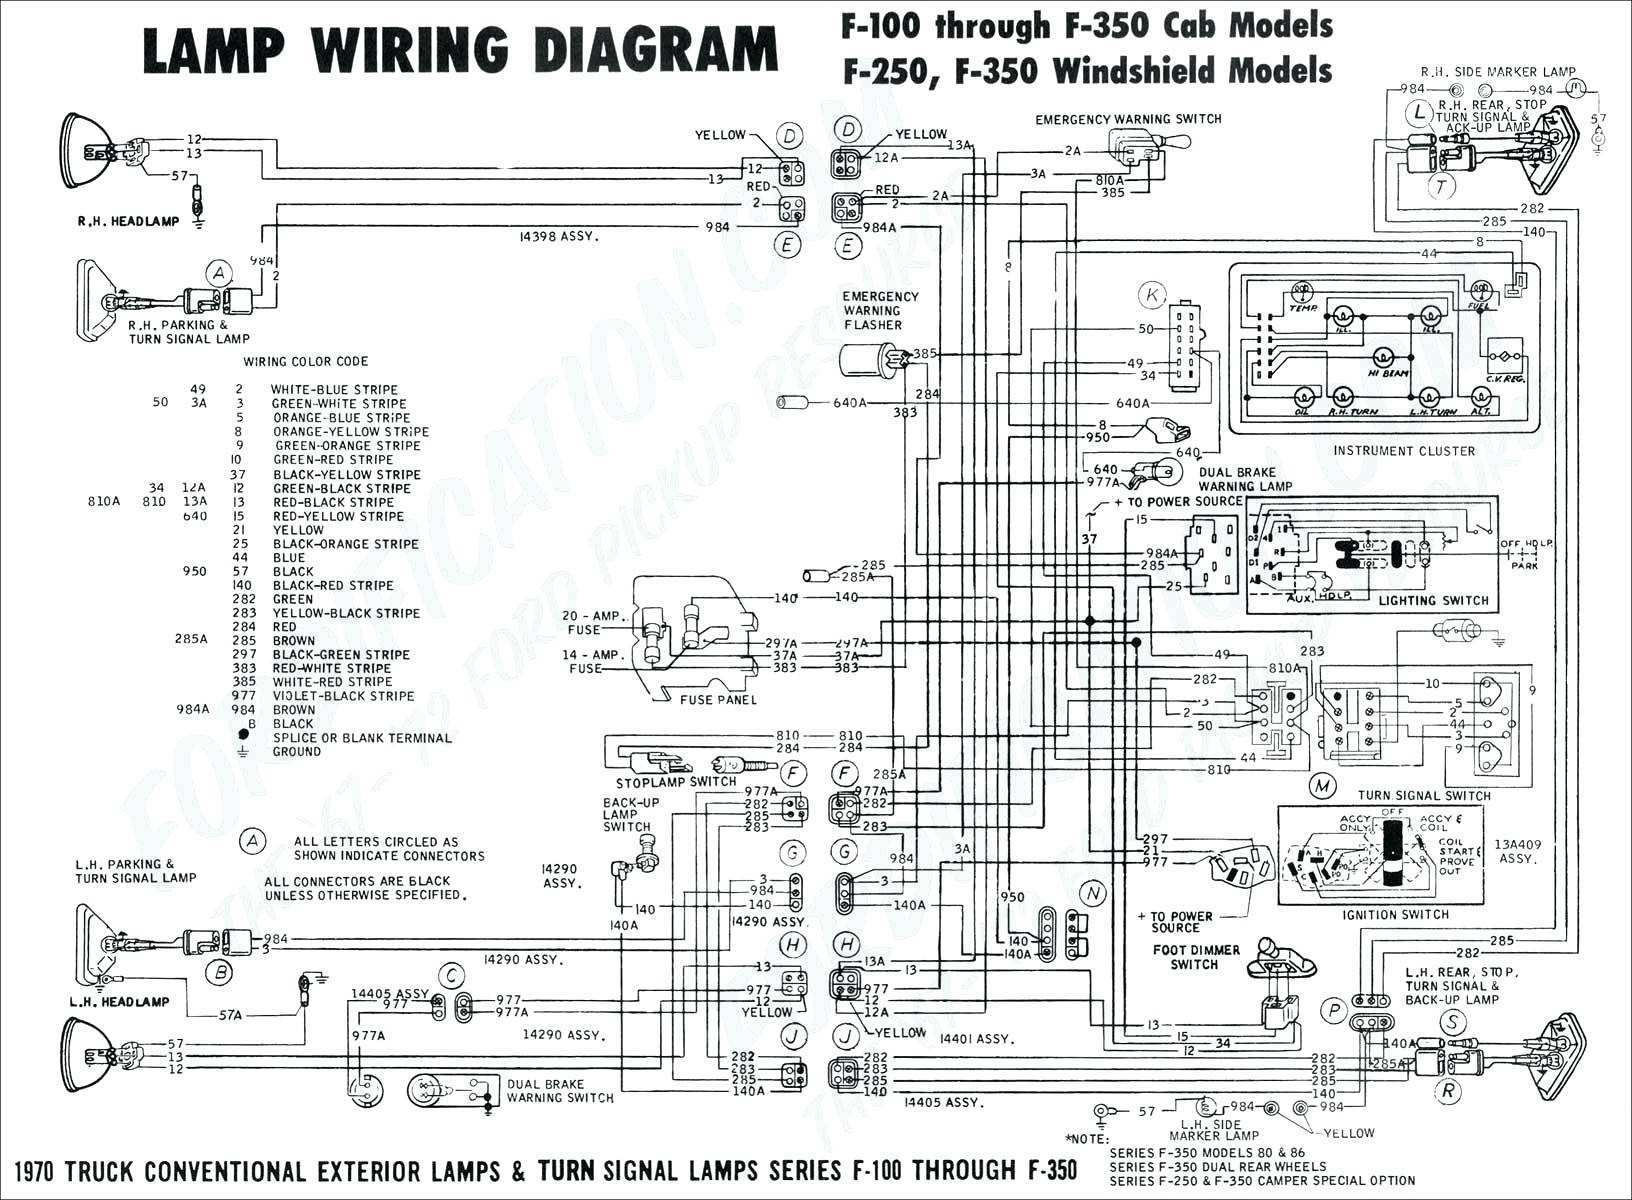 third brake light wiring diagram Collection-New Third Brake Light Wiring Diagram Diagram 18-k